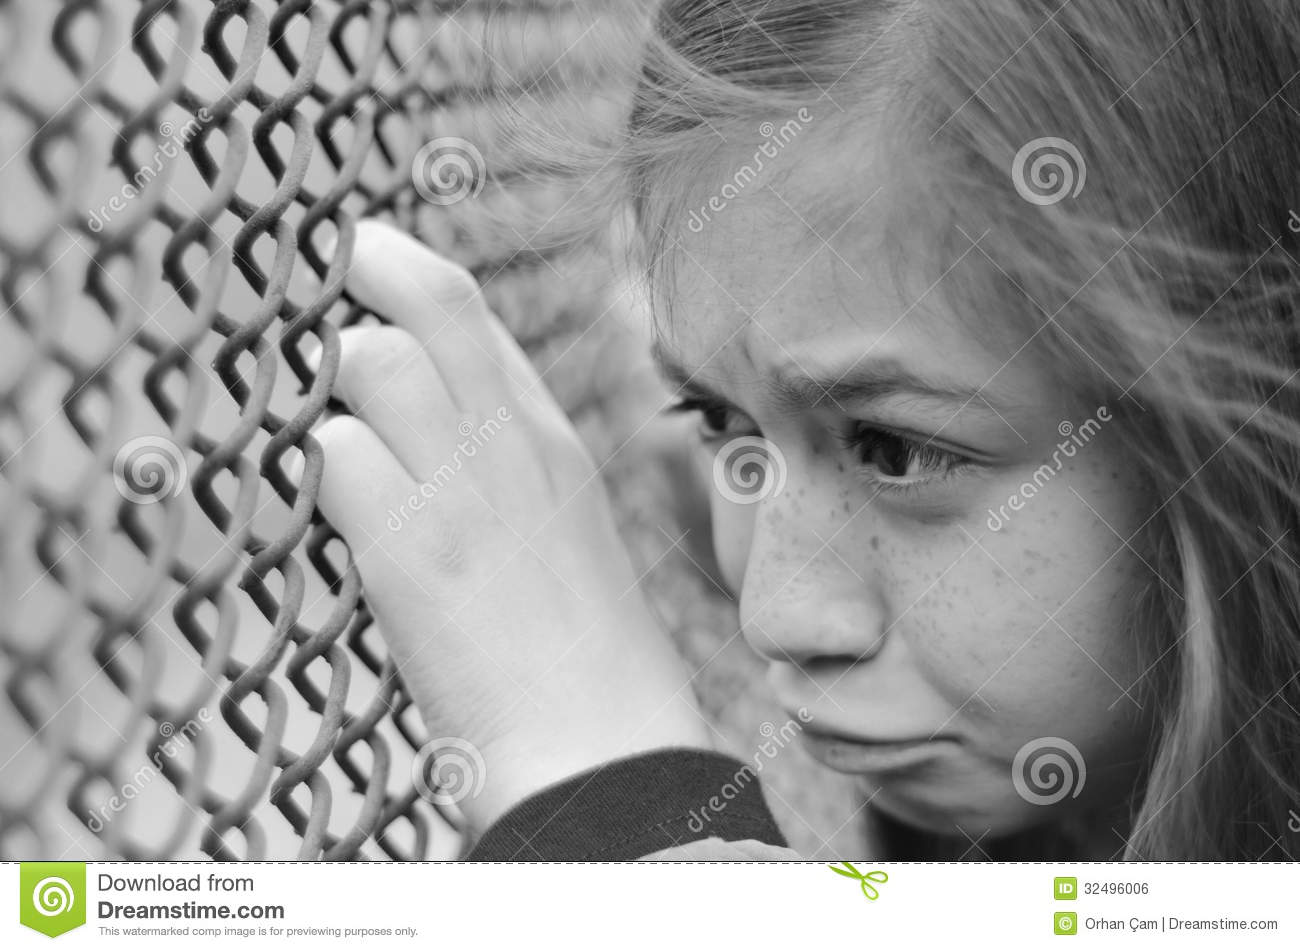 Sad depressed girl with rusty fence - black and white